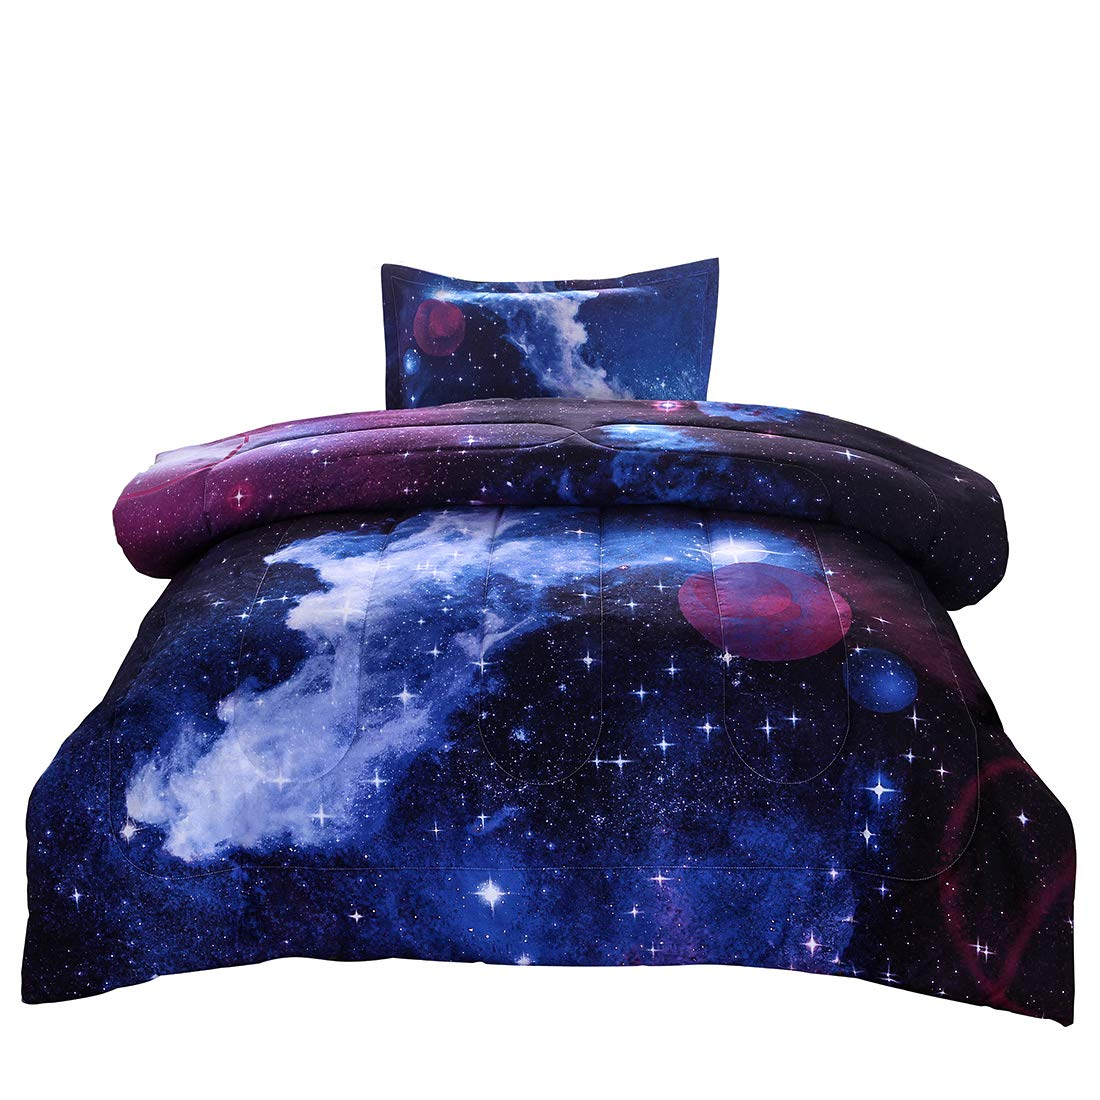 JQinHome Twin Galaxies Dark Blue Comforter Sets Blanket, 3D Outer Space Themed Bedding, All-Season Reversible Quilted Duvet, for Children Boy Girl Teen Kids - Includes 1 Comforter, 1 Pillow Sham by JQinHome